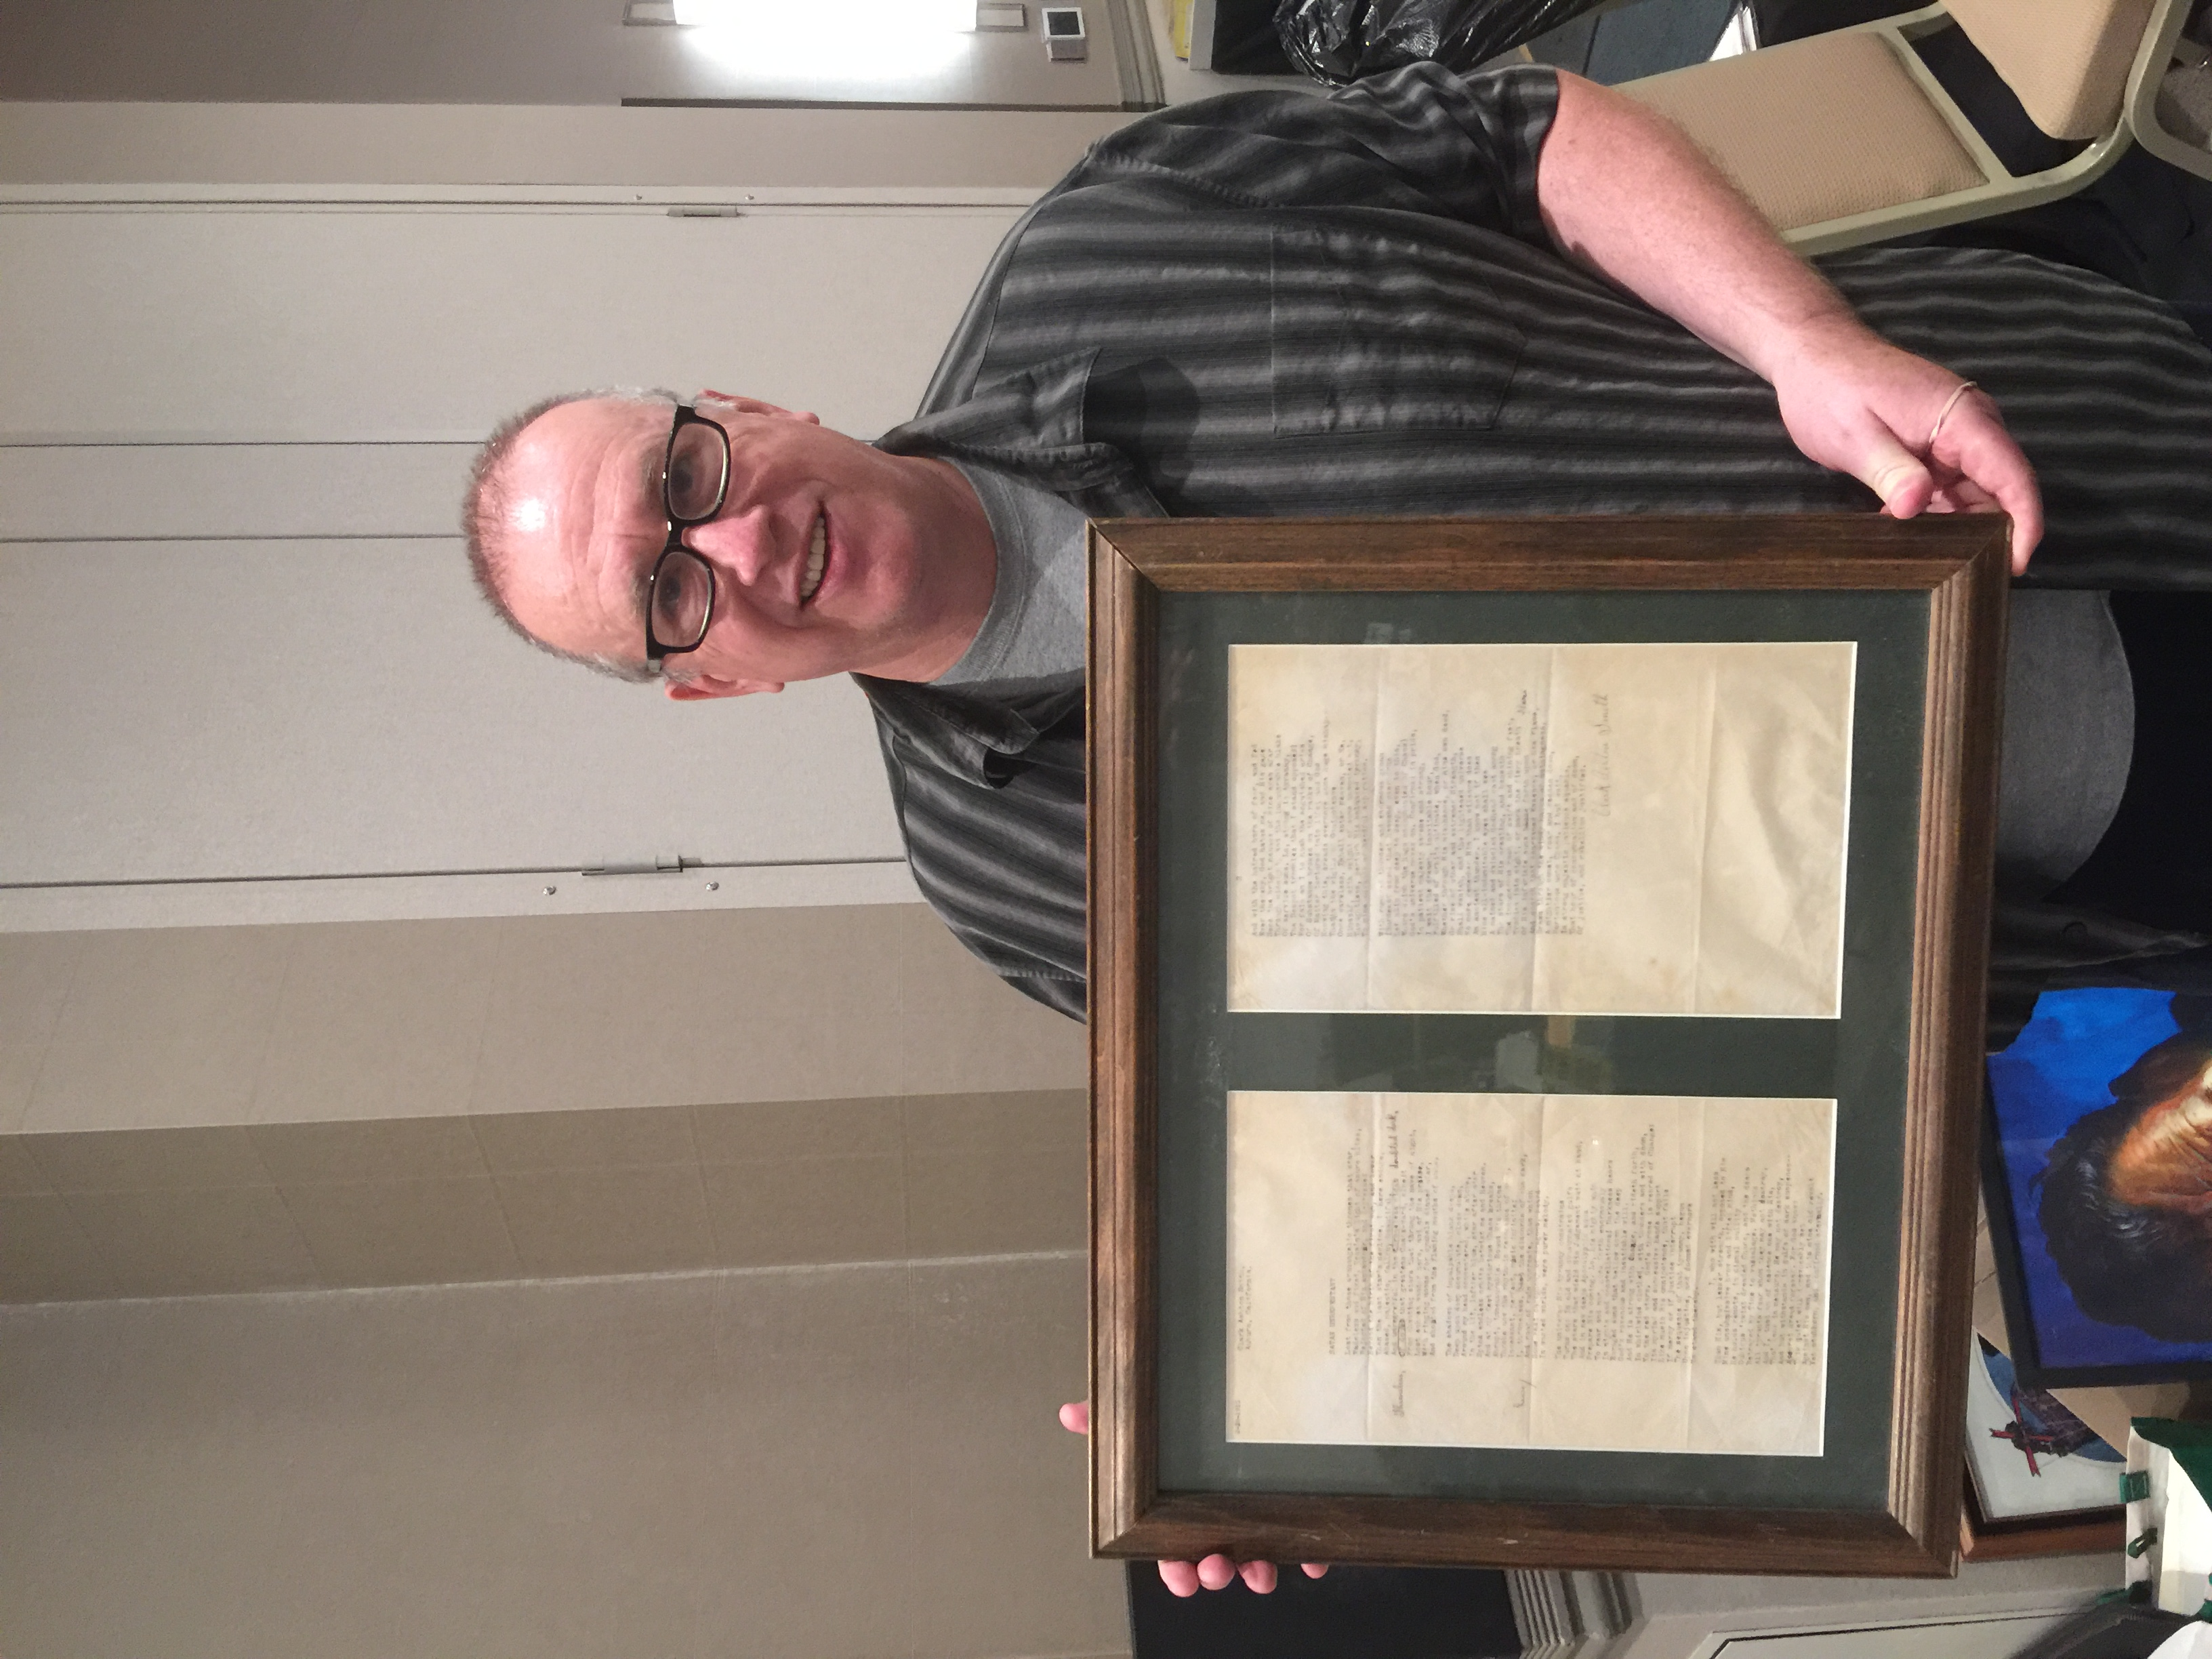 Scott Hartshorn holding an original manuscript of a Clark Ashton Smith poem